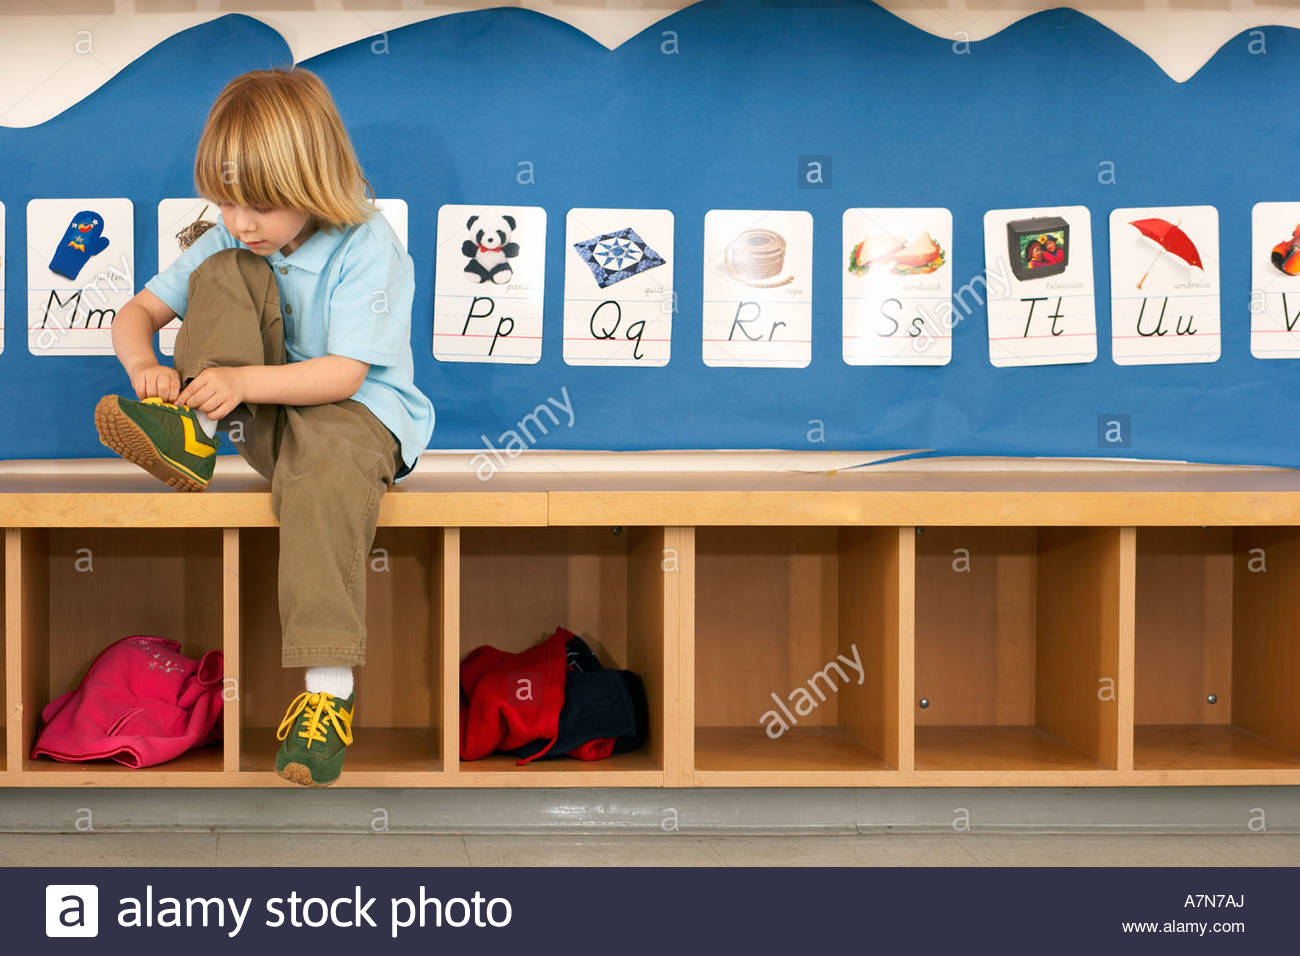 Blonde boy 4 6 sitting on bench in classroom tying shoelace alphabet cards on wall - Stock Image